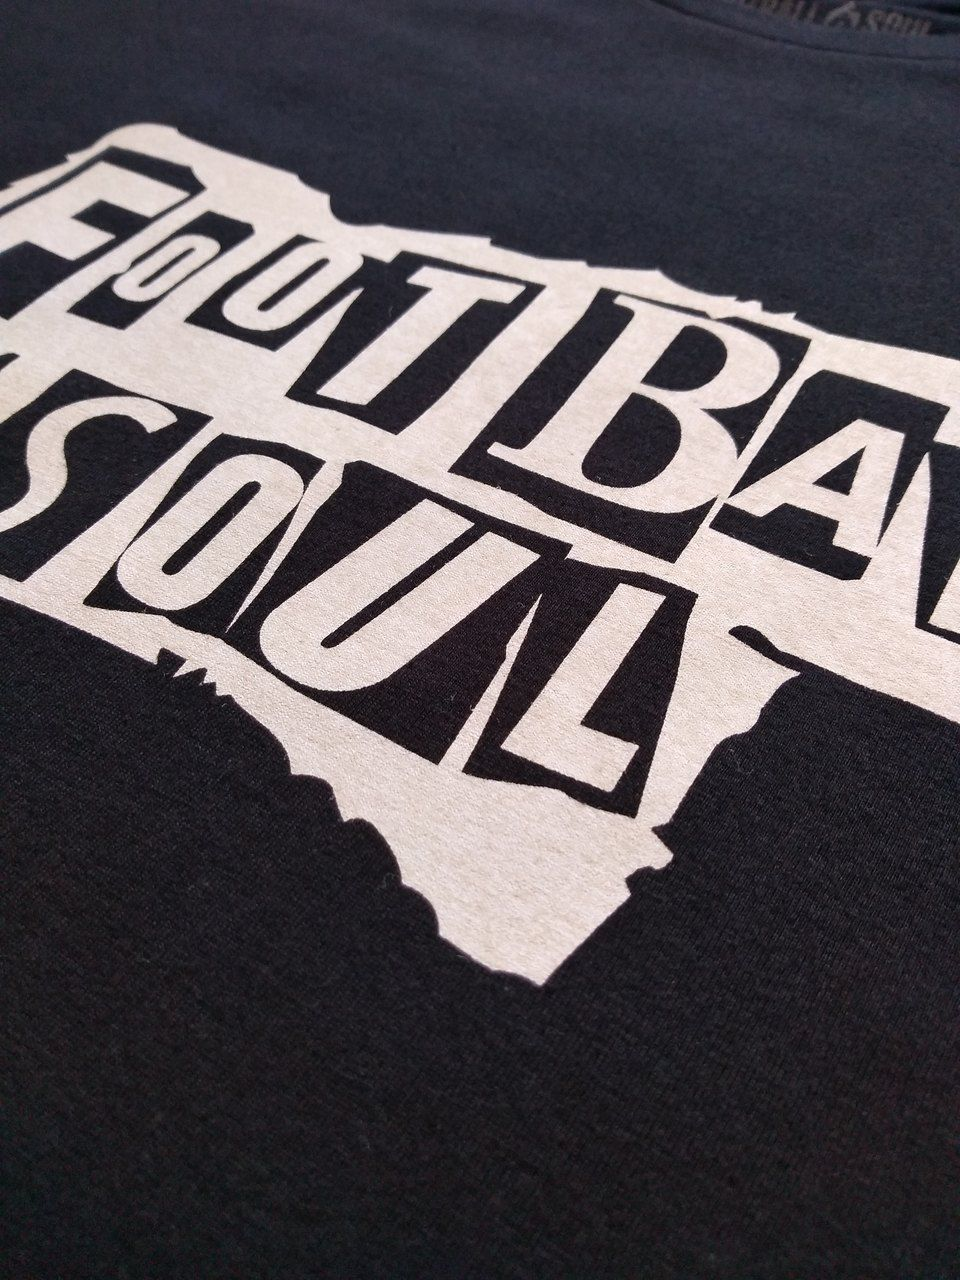 CAMISETA FOOTBALL SOUL SEX PISTOLS